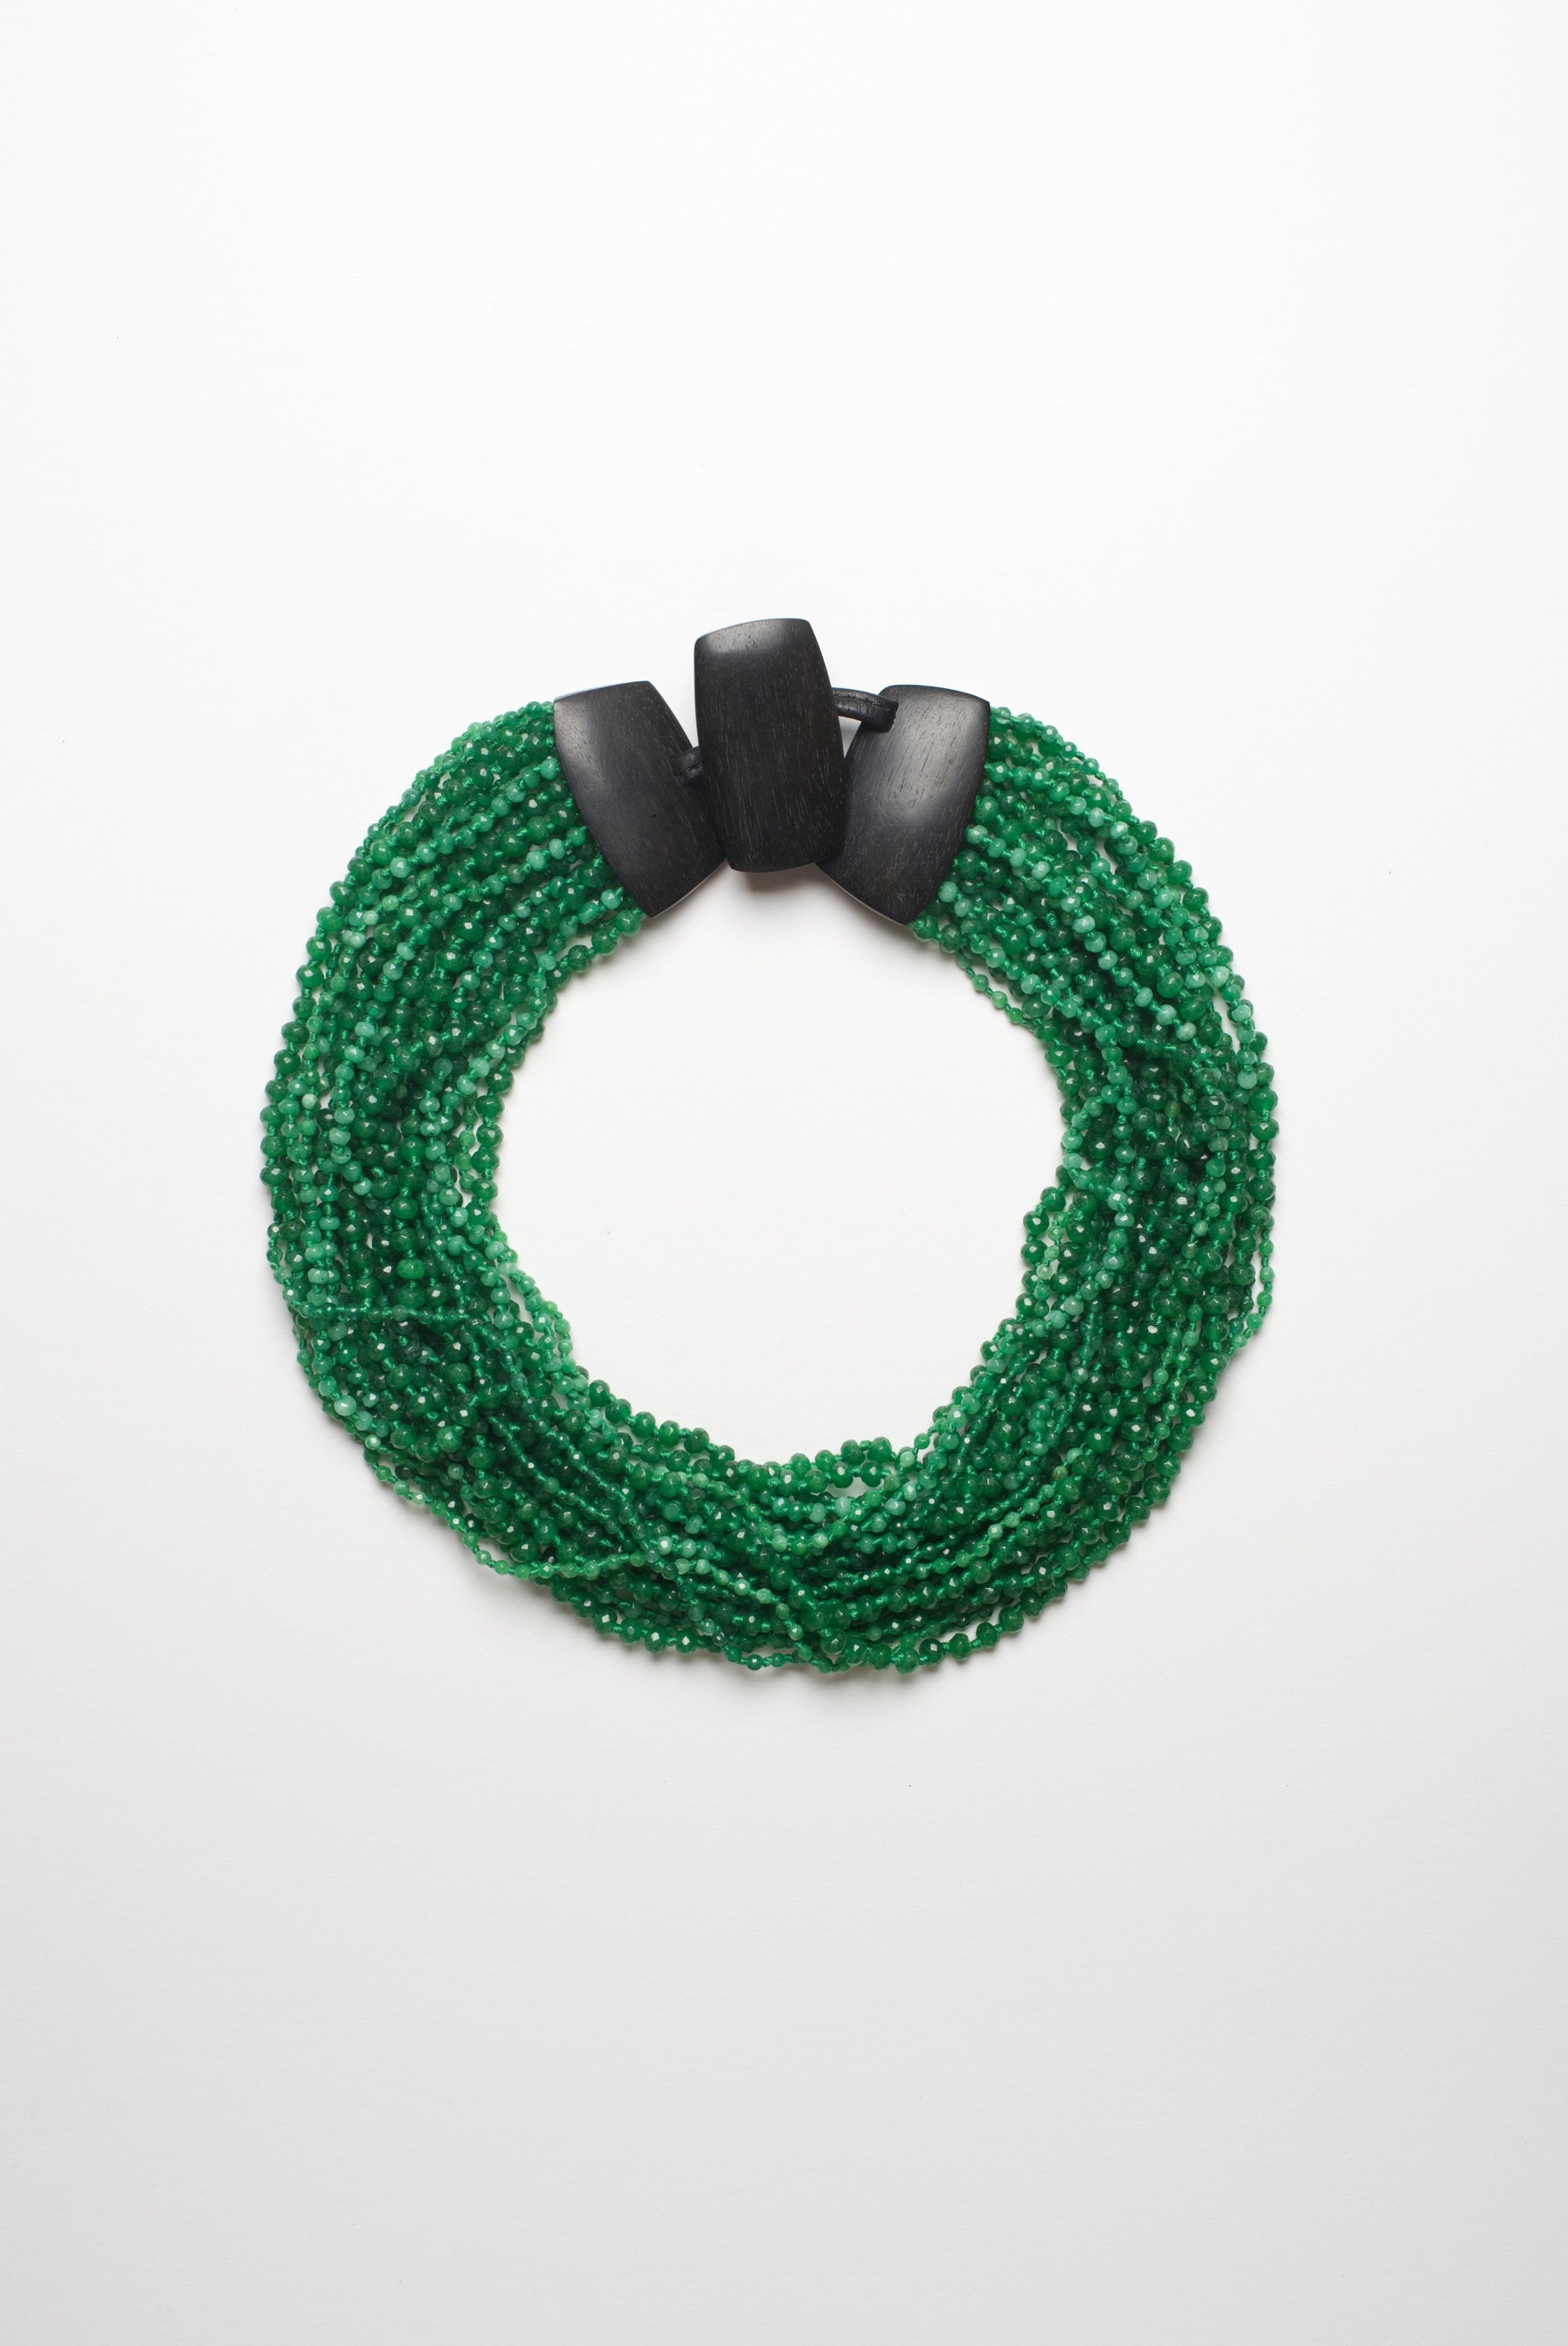 Necklace in aventurine, ebony and leather